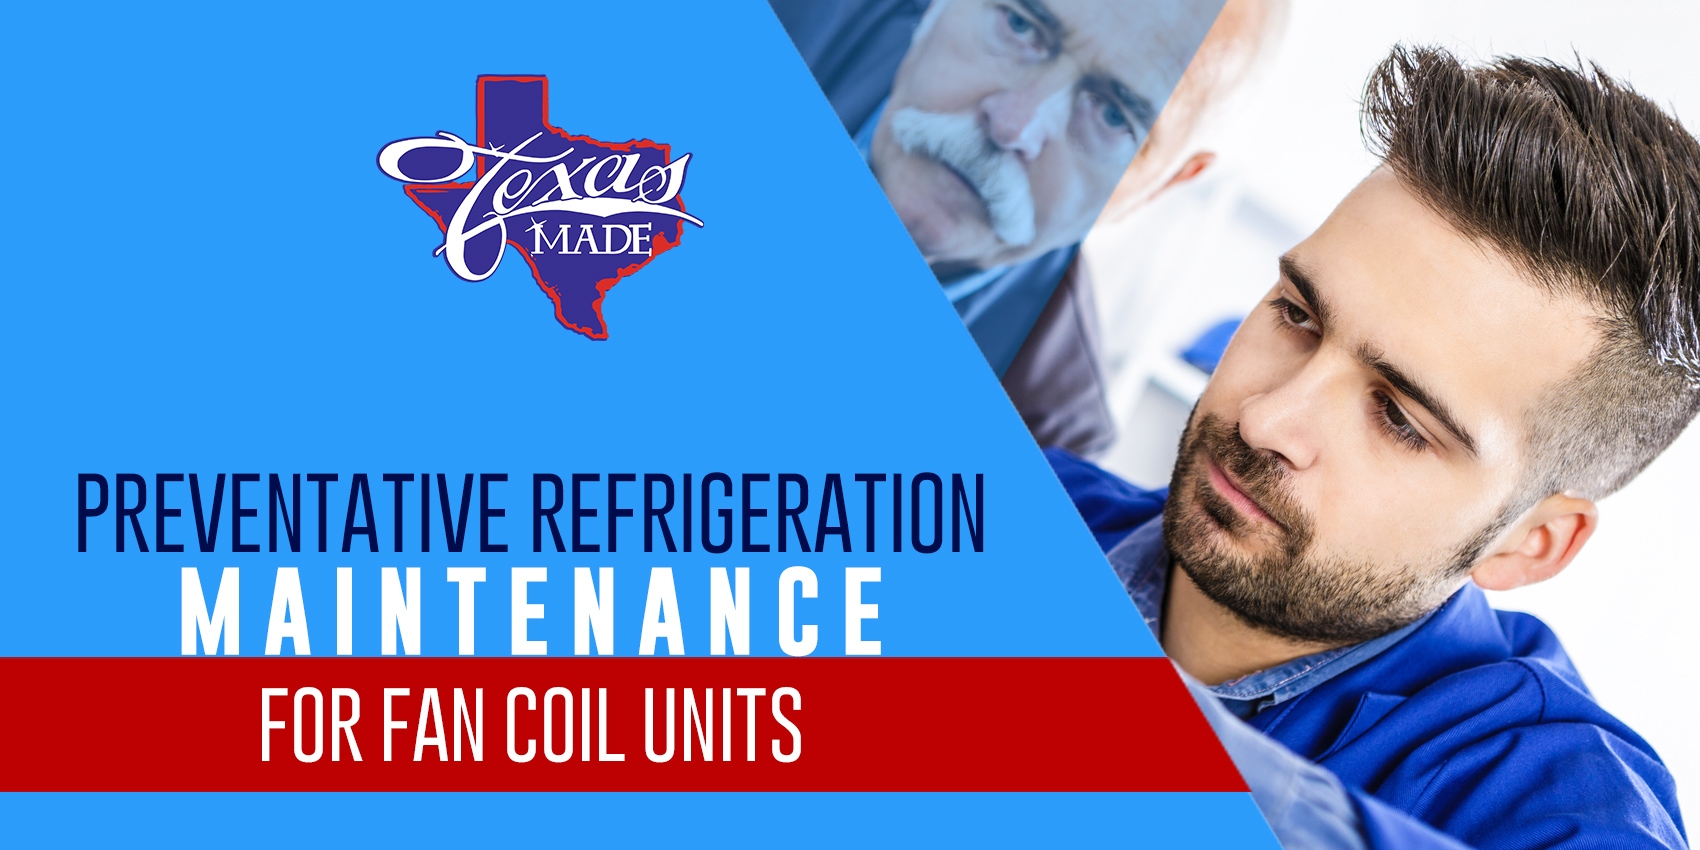 Preventative Refrigeration Maintenance for Fan Coil Units